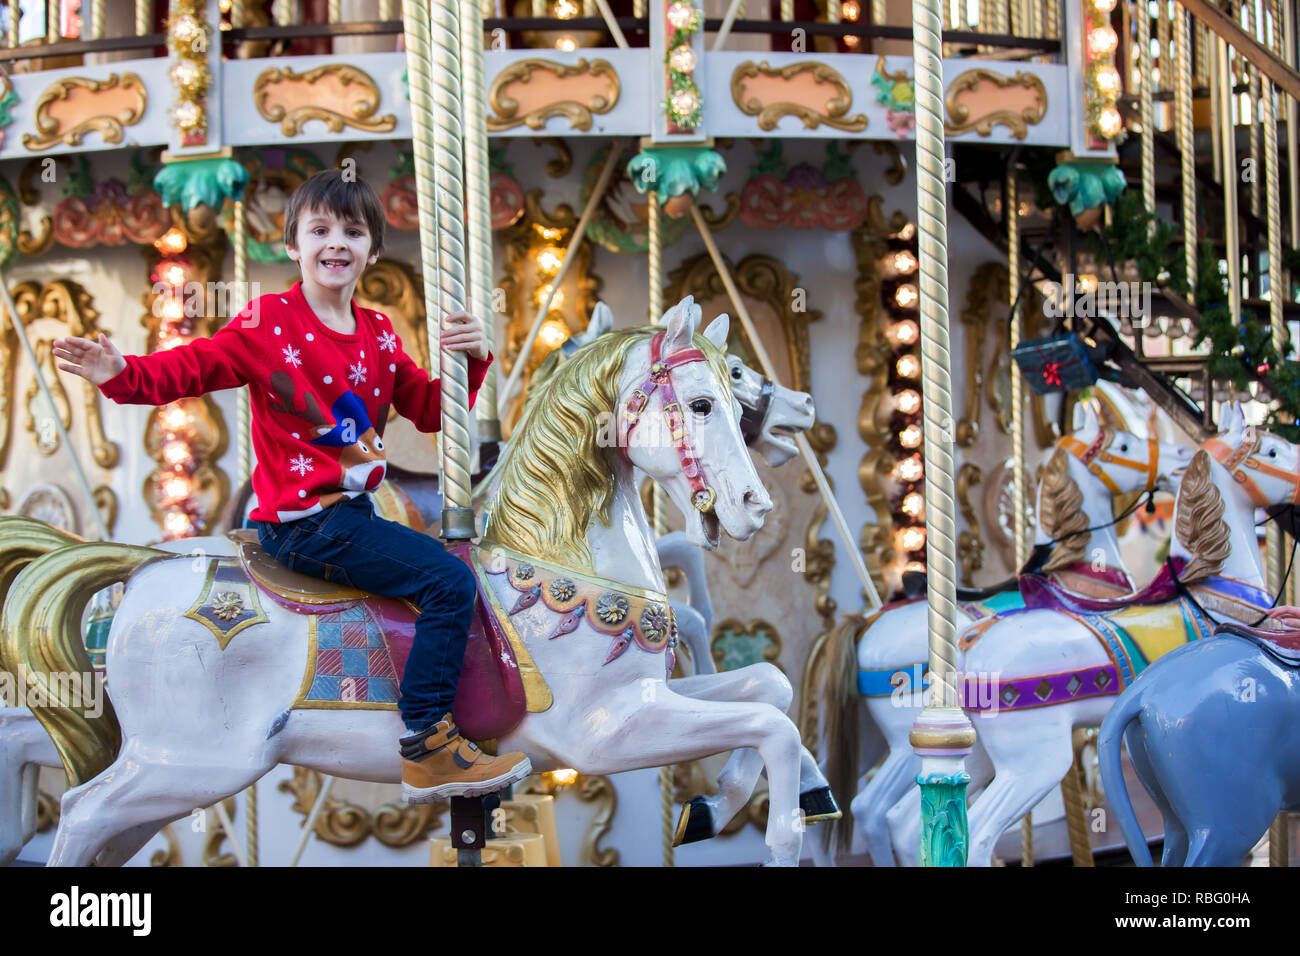 Sweet boys, brothers, riding in a Santa Claus sledge on a merry-go-round, carousel attraction in Europe, active children, wintertime Stock Photo